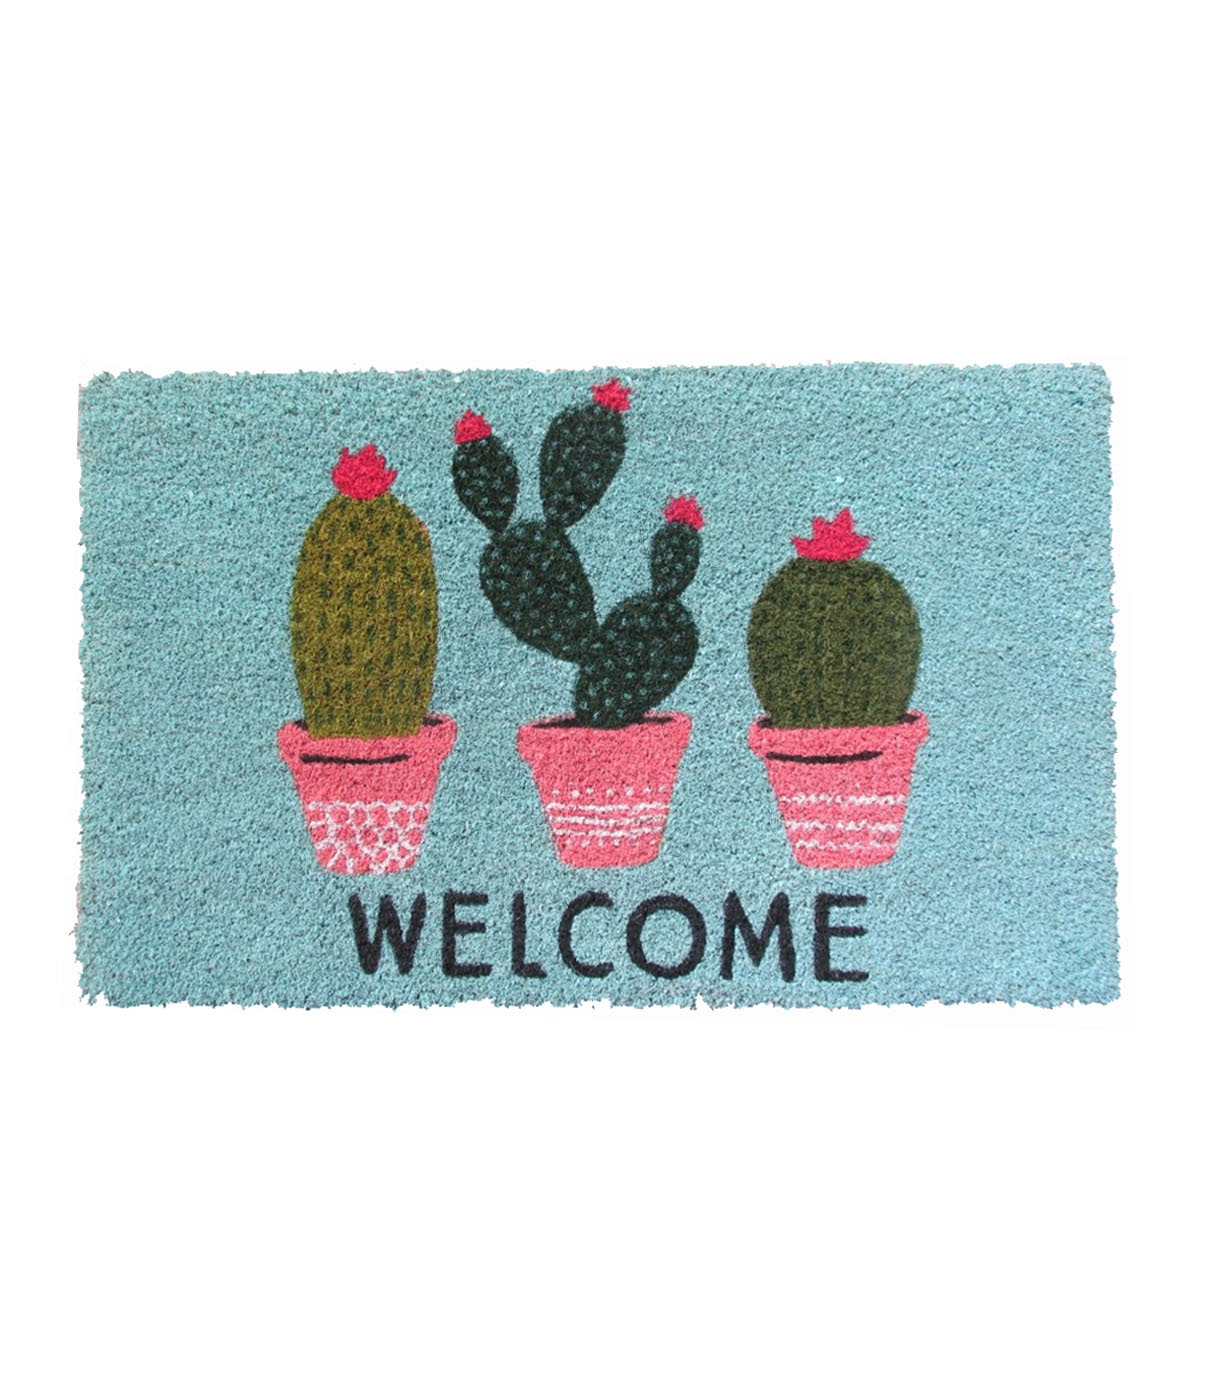 red facility cactus cleaning safety floor mat door mats rubber industrial entrance restaurant janitorial tuffdek and commercial x maintenance health